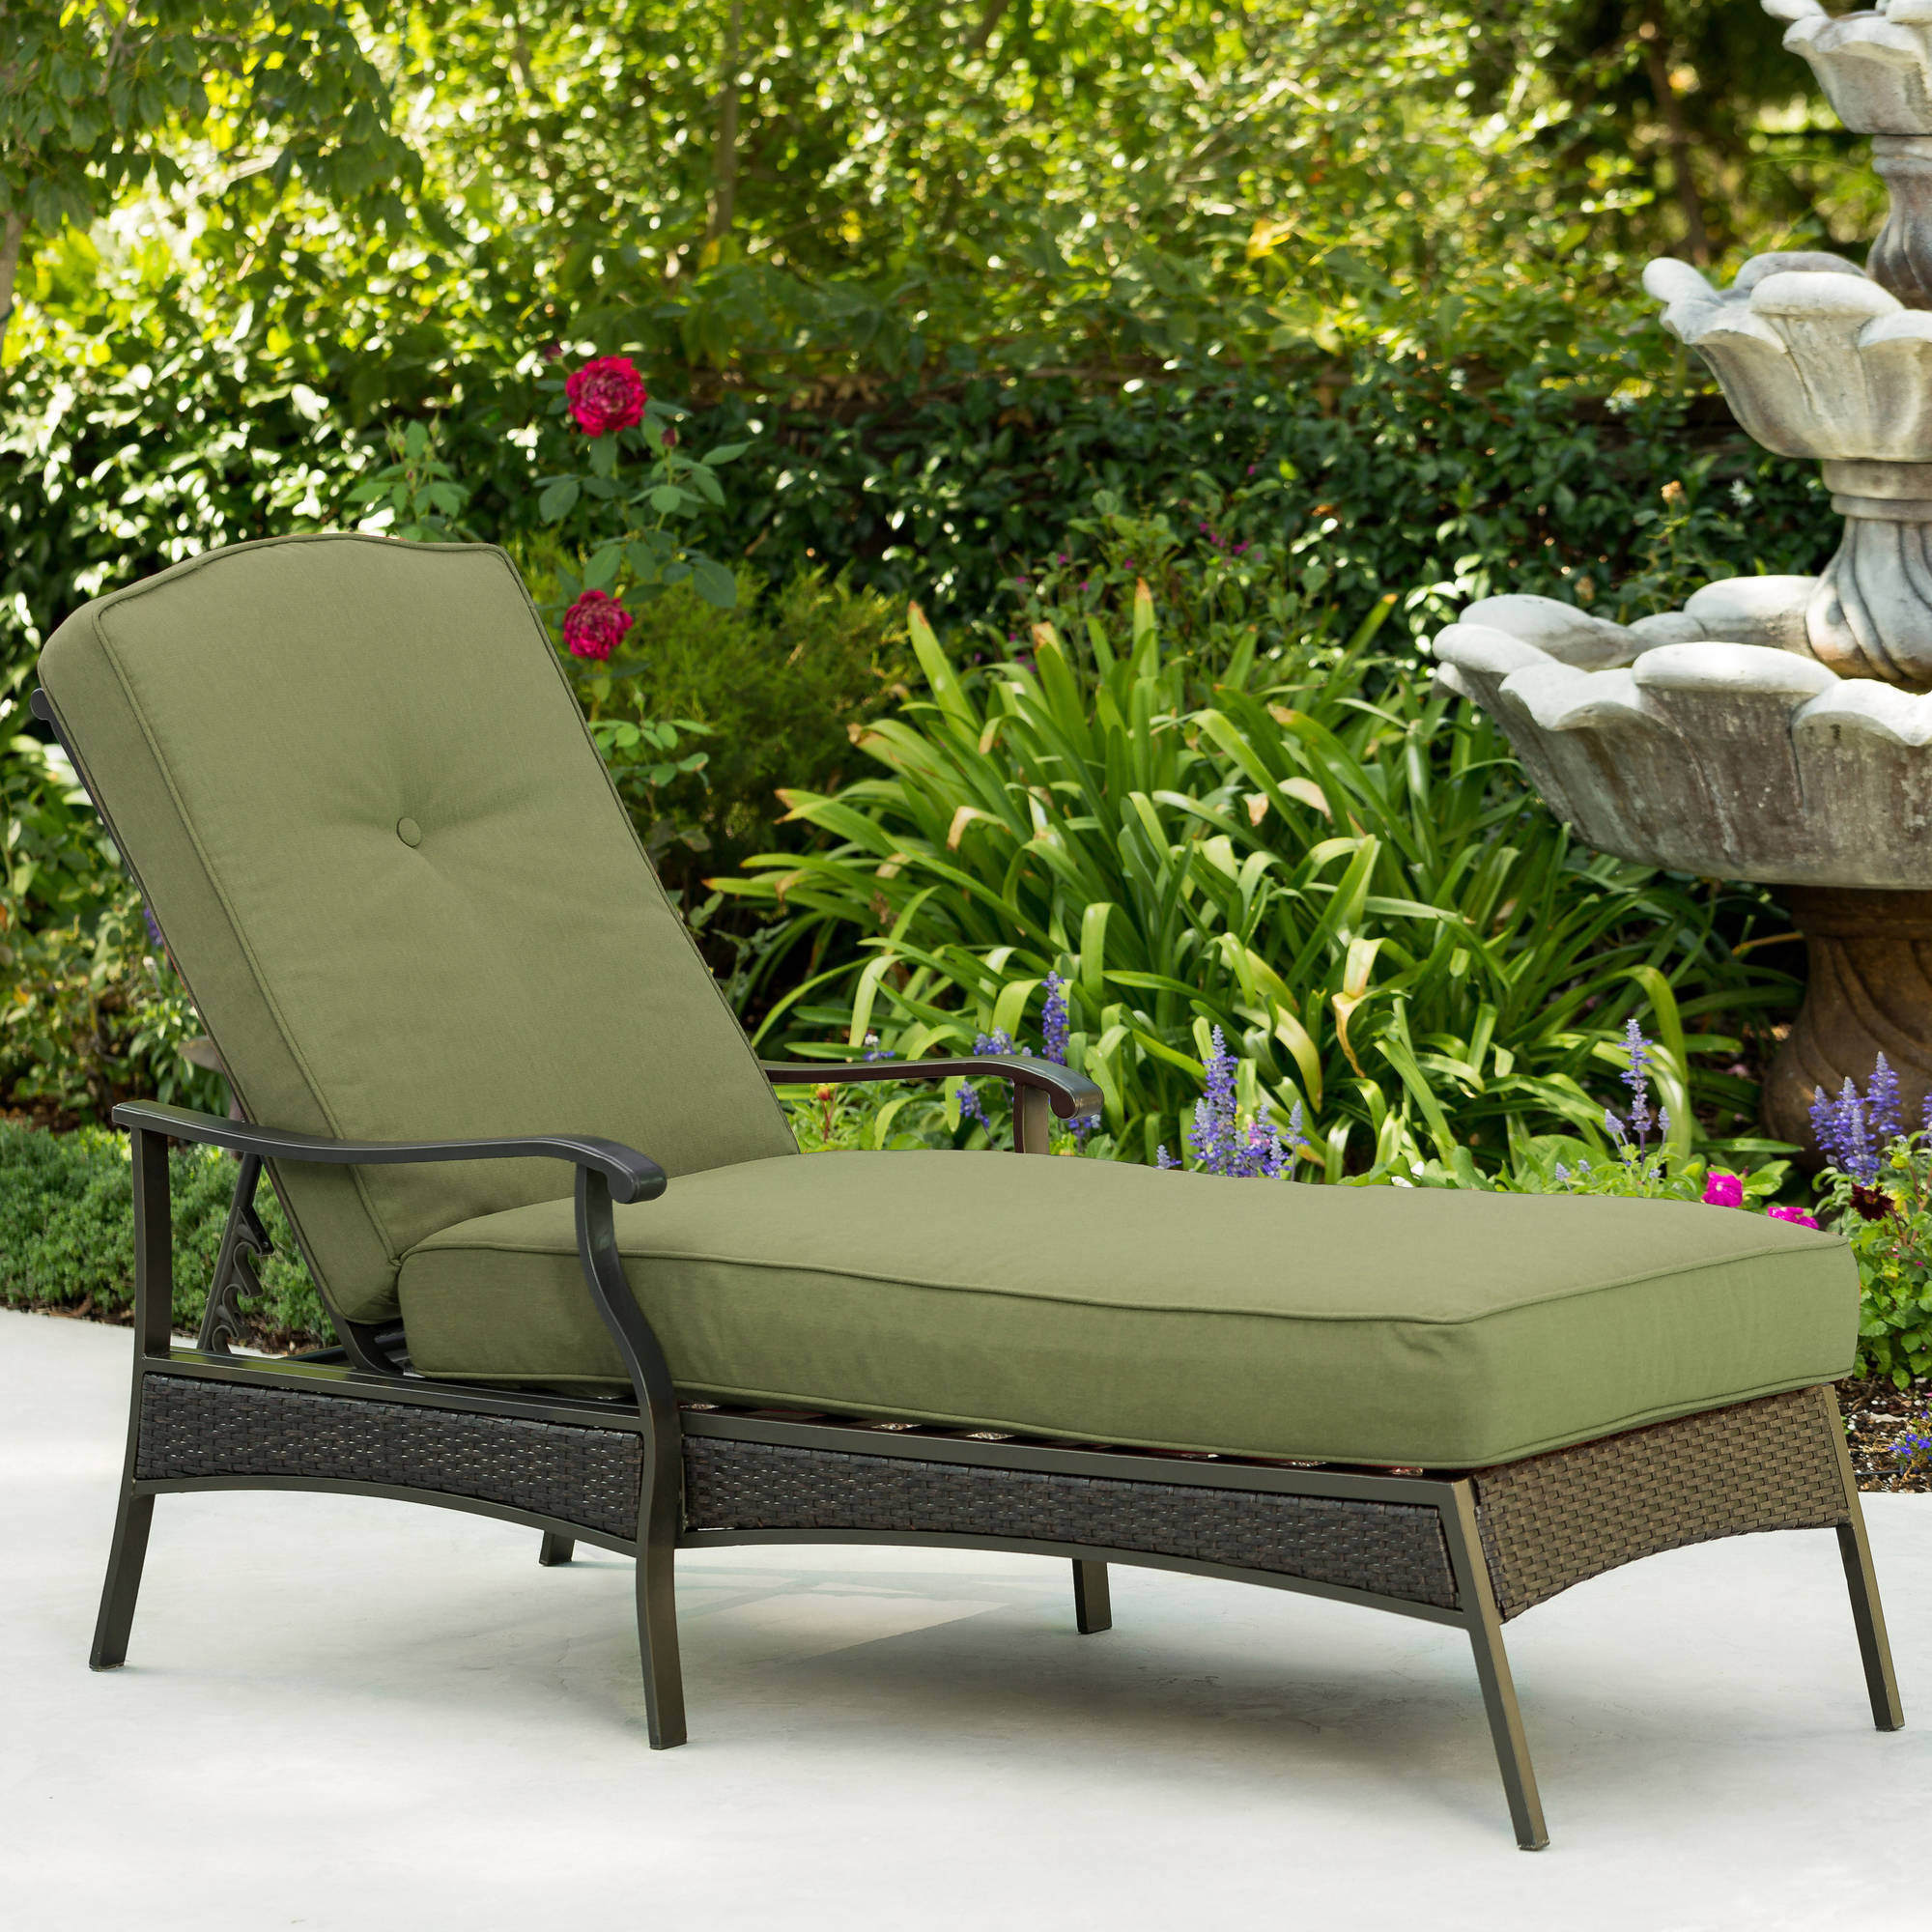 Outdoor Cart Wheel Adjustable Chaise Lounge Chairs Inside Well Liked Better Homes & Gardens Providence Outdoor Chaise Lounge, Green – Walmart (View 12 of 25)